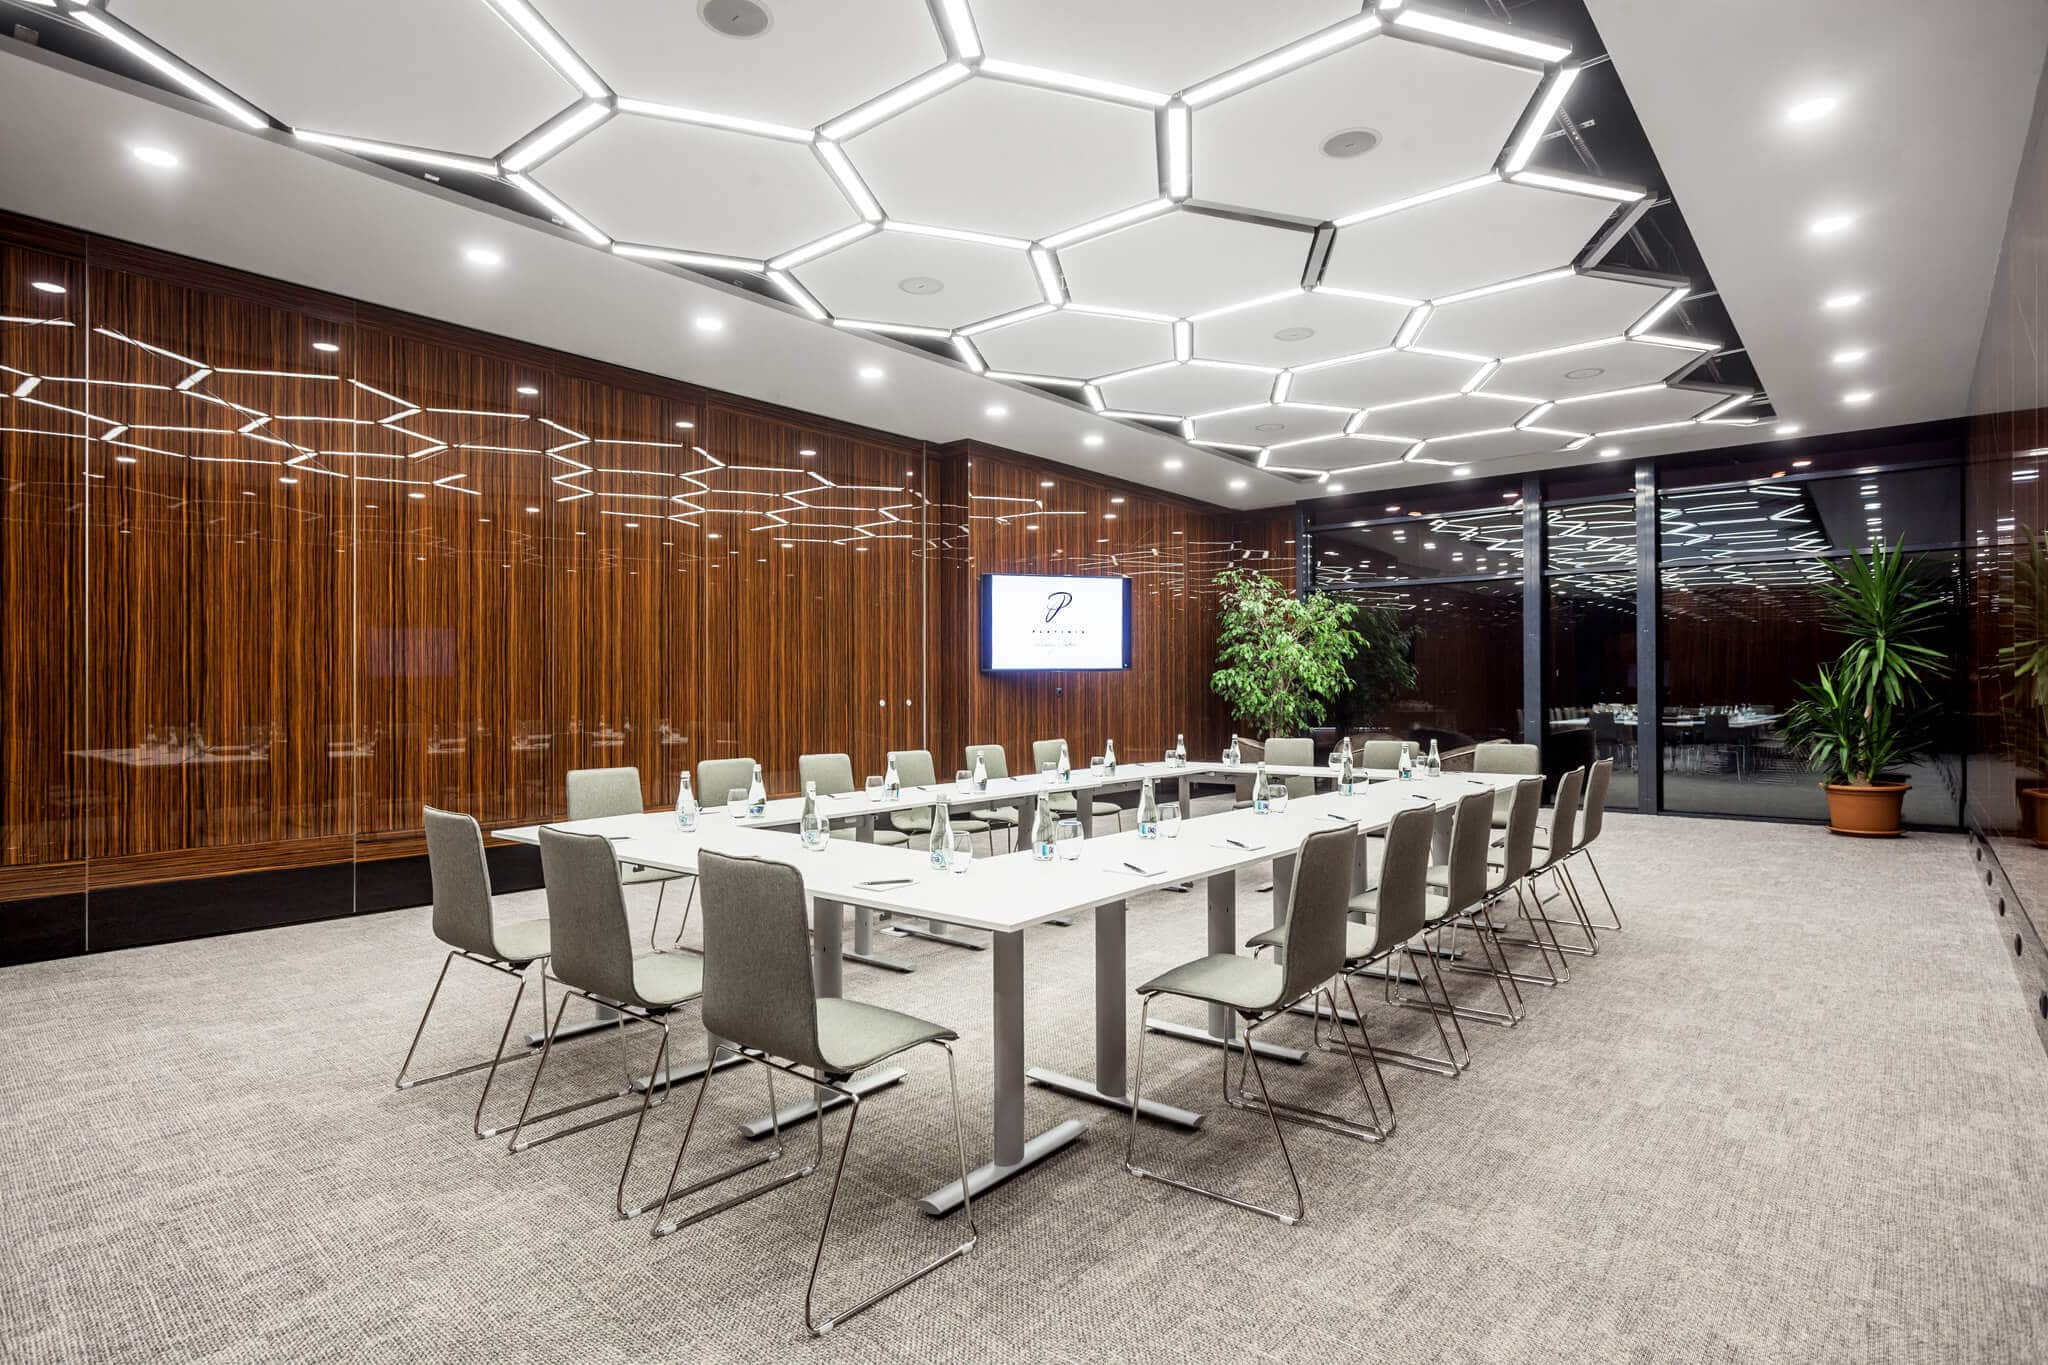 conference hall design low budget interior designconference room low budget interior design